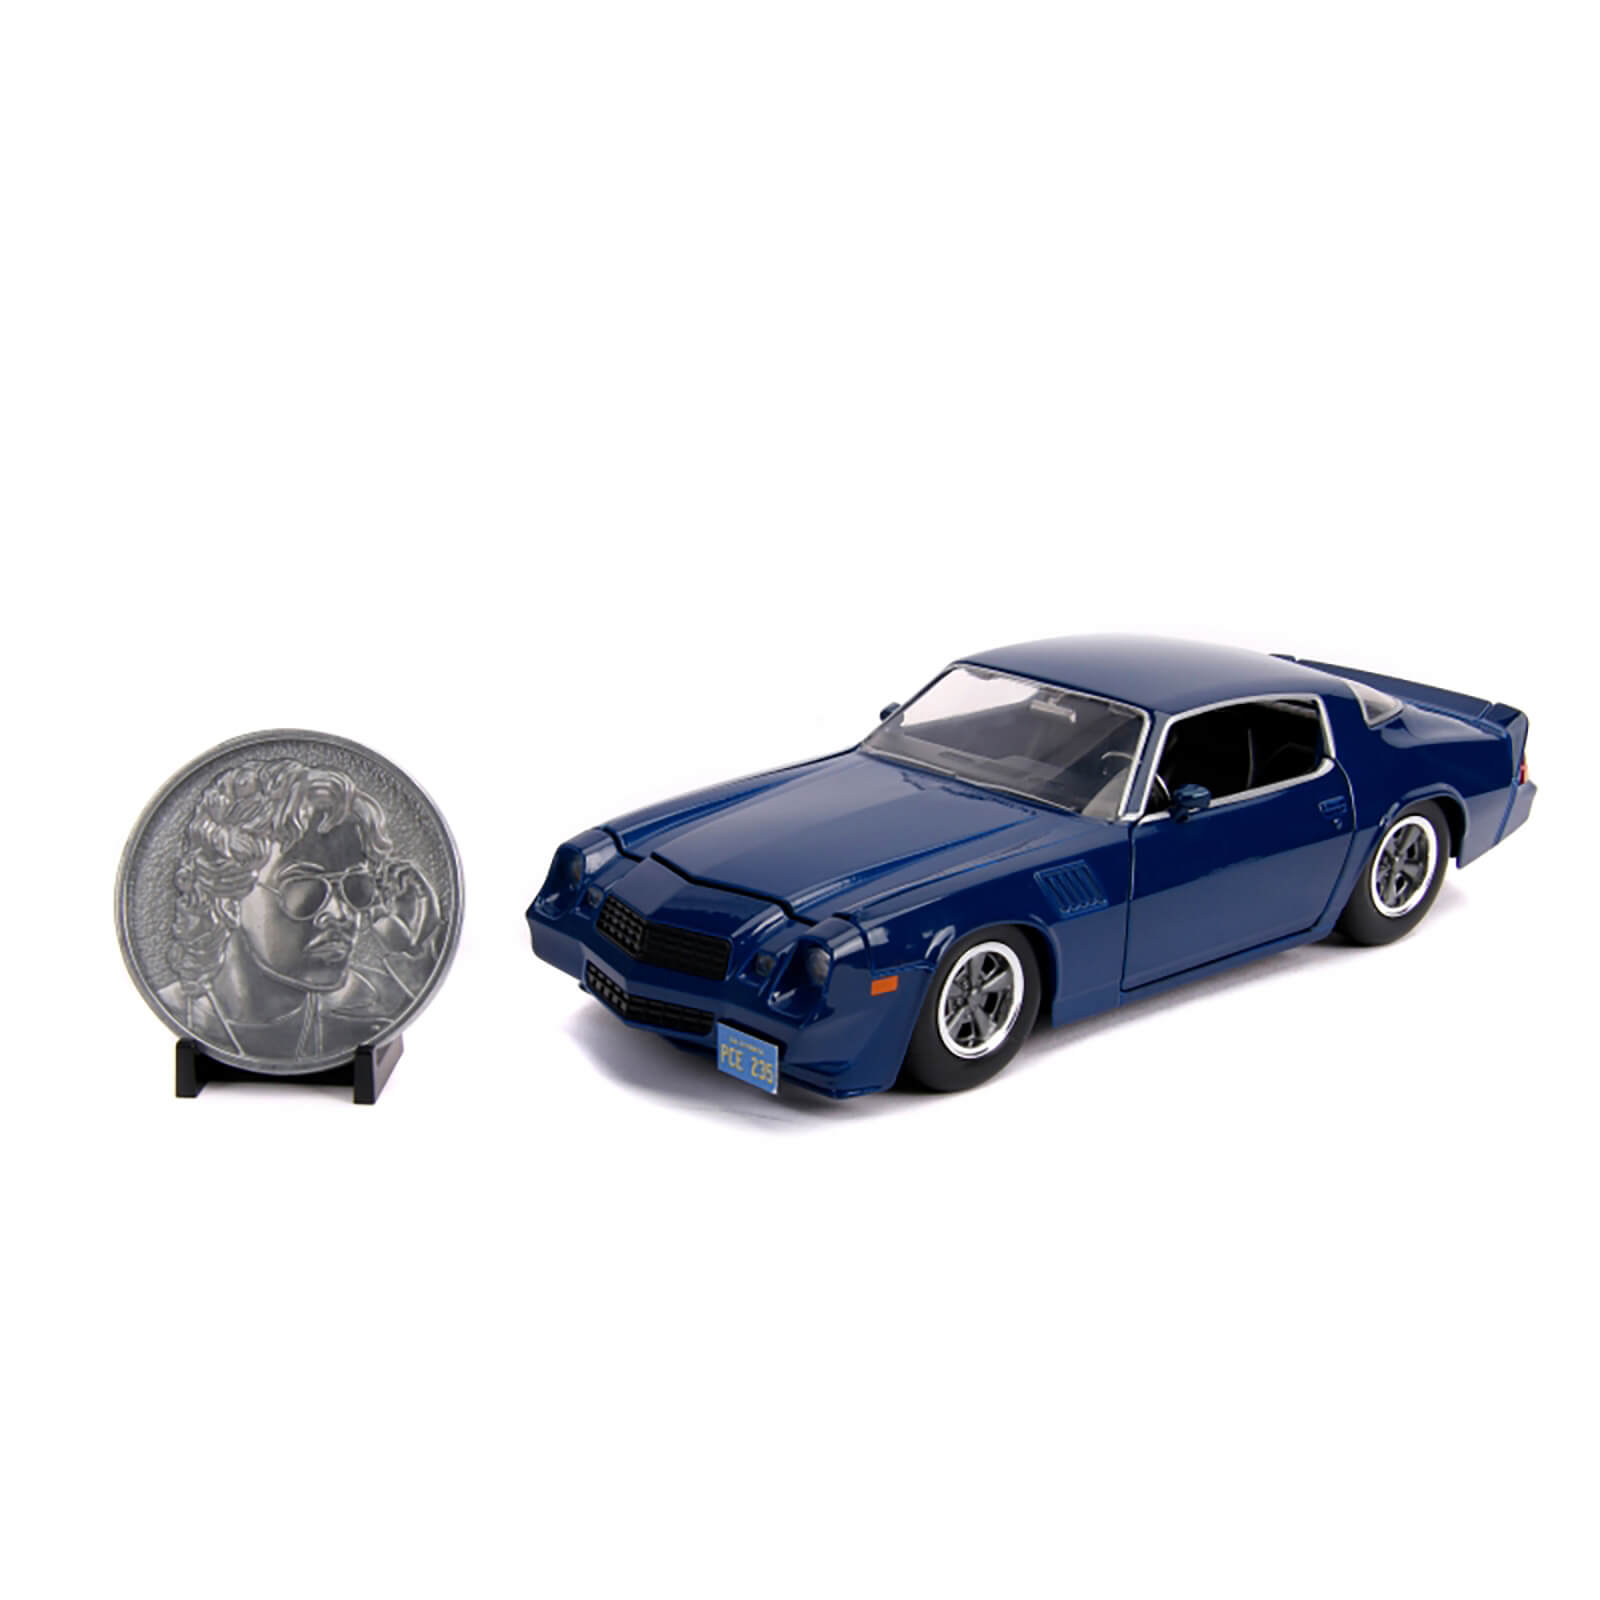 Image of Jada Die Cast 1:24 Stranger Things Billy's Chevy Camaro with Collector's Coin